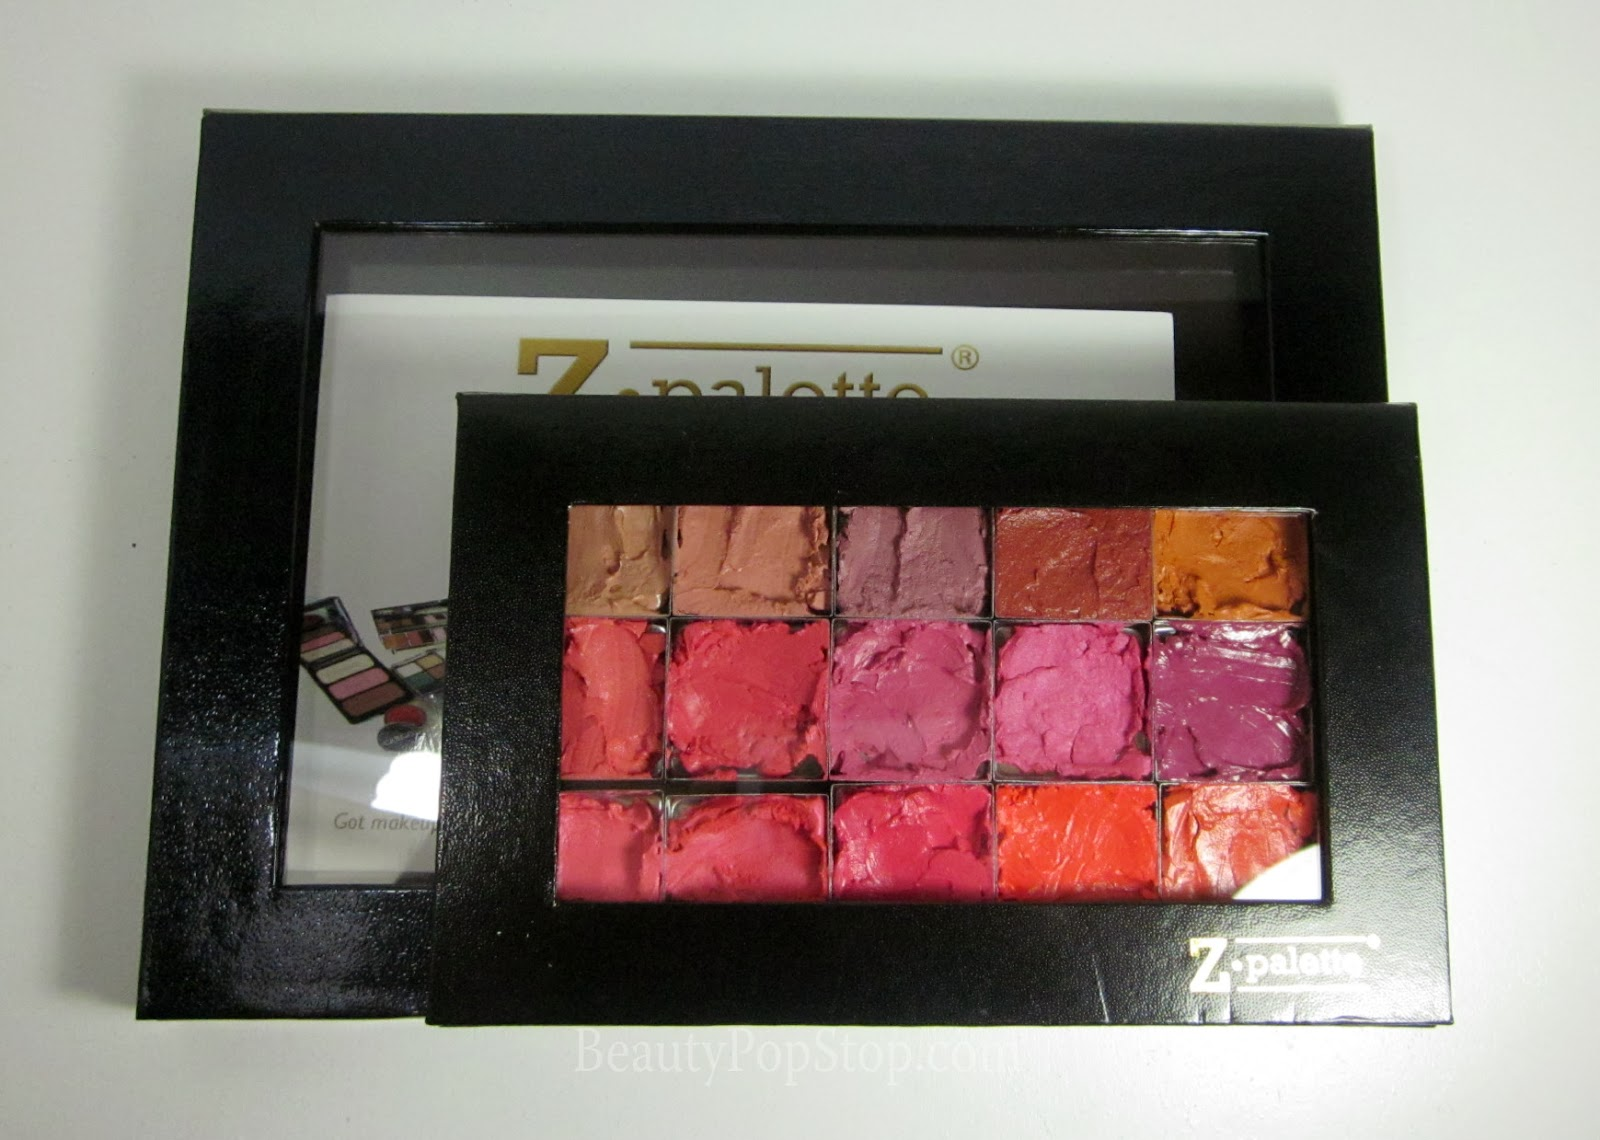 zpalette extra large compared to zpalette 4u review